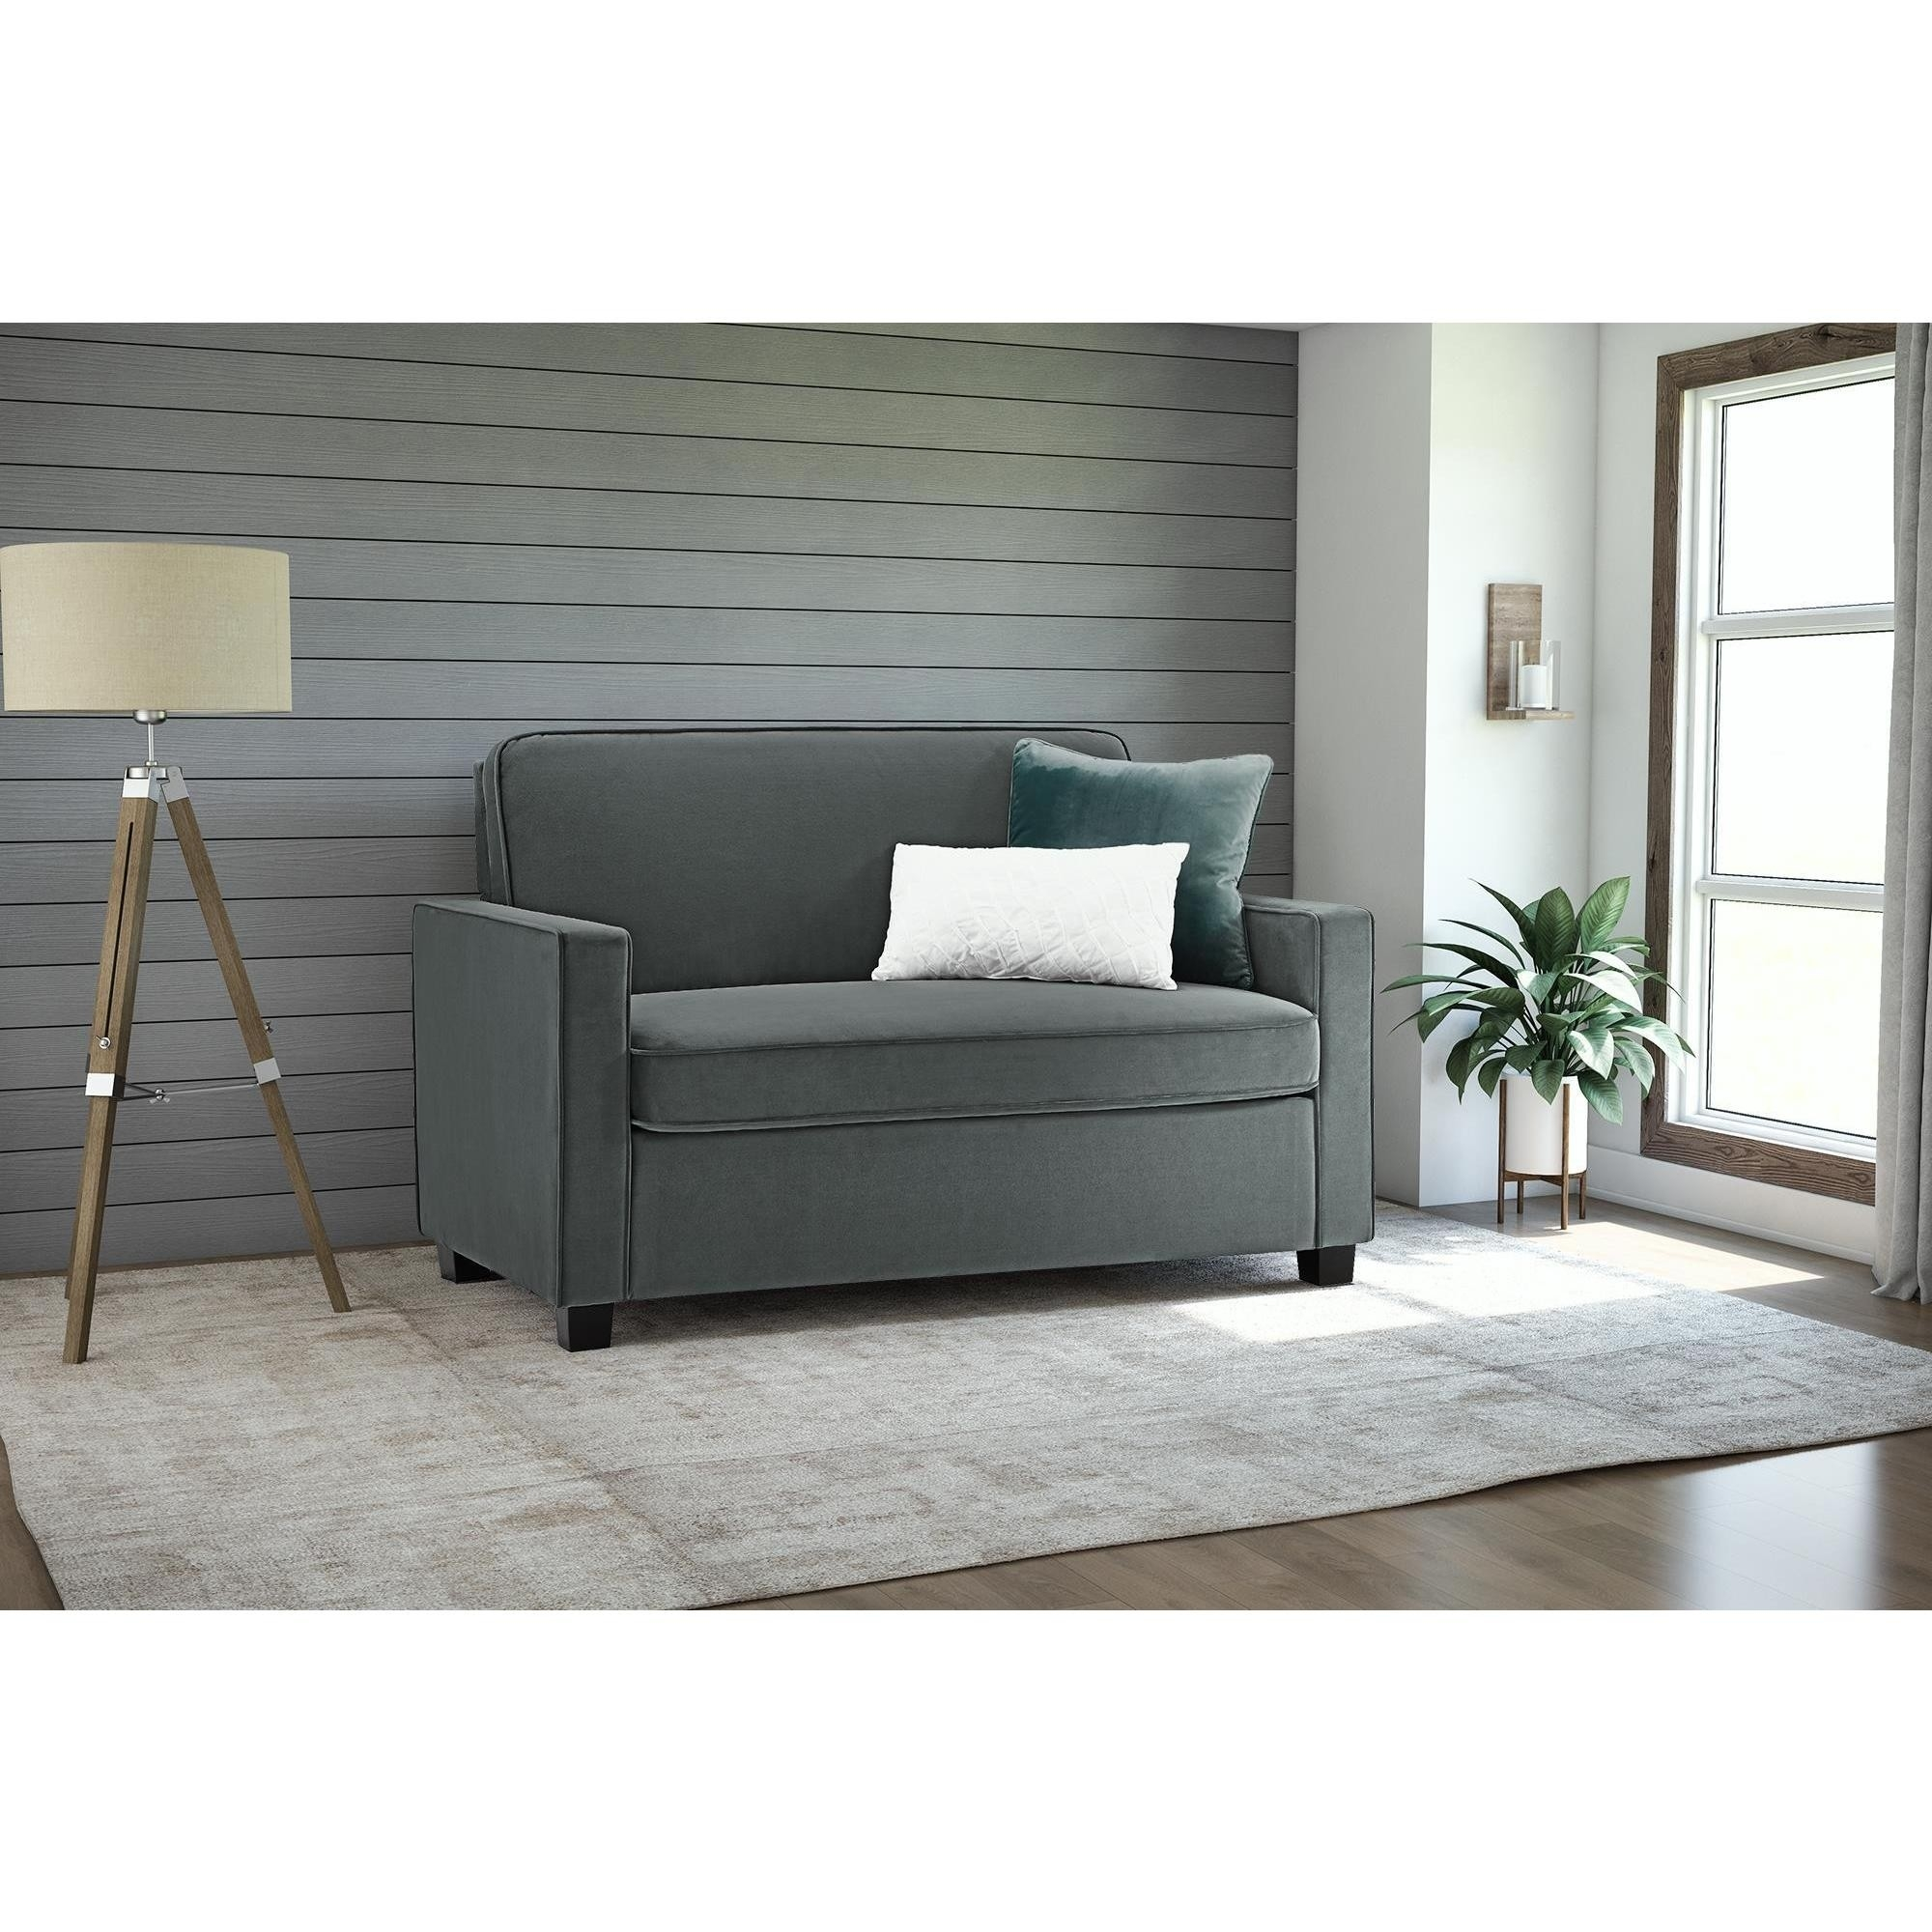 Picture of: Pull Out Loveseat Sofa Bed Ideas On Foter